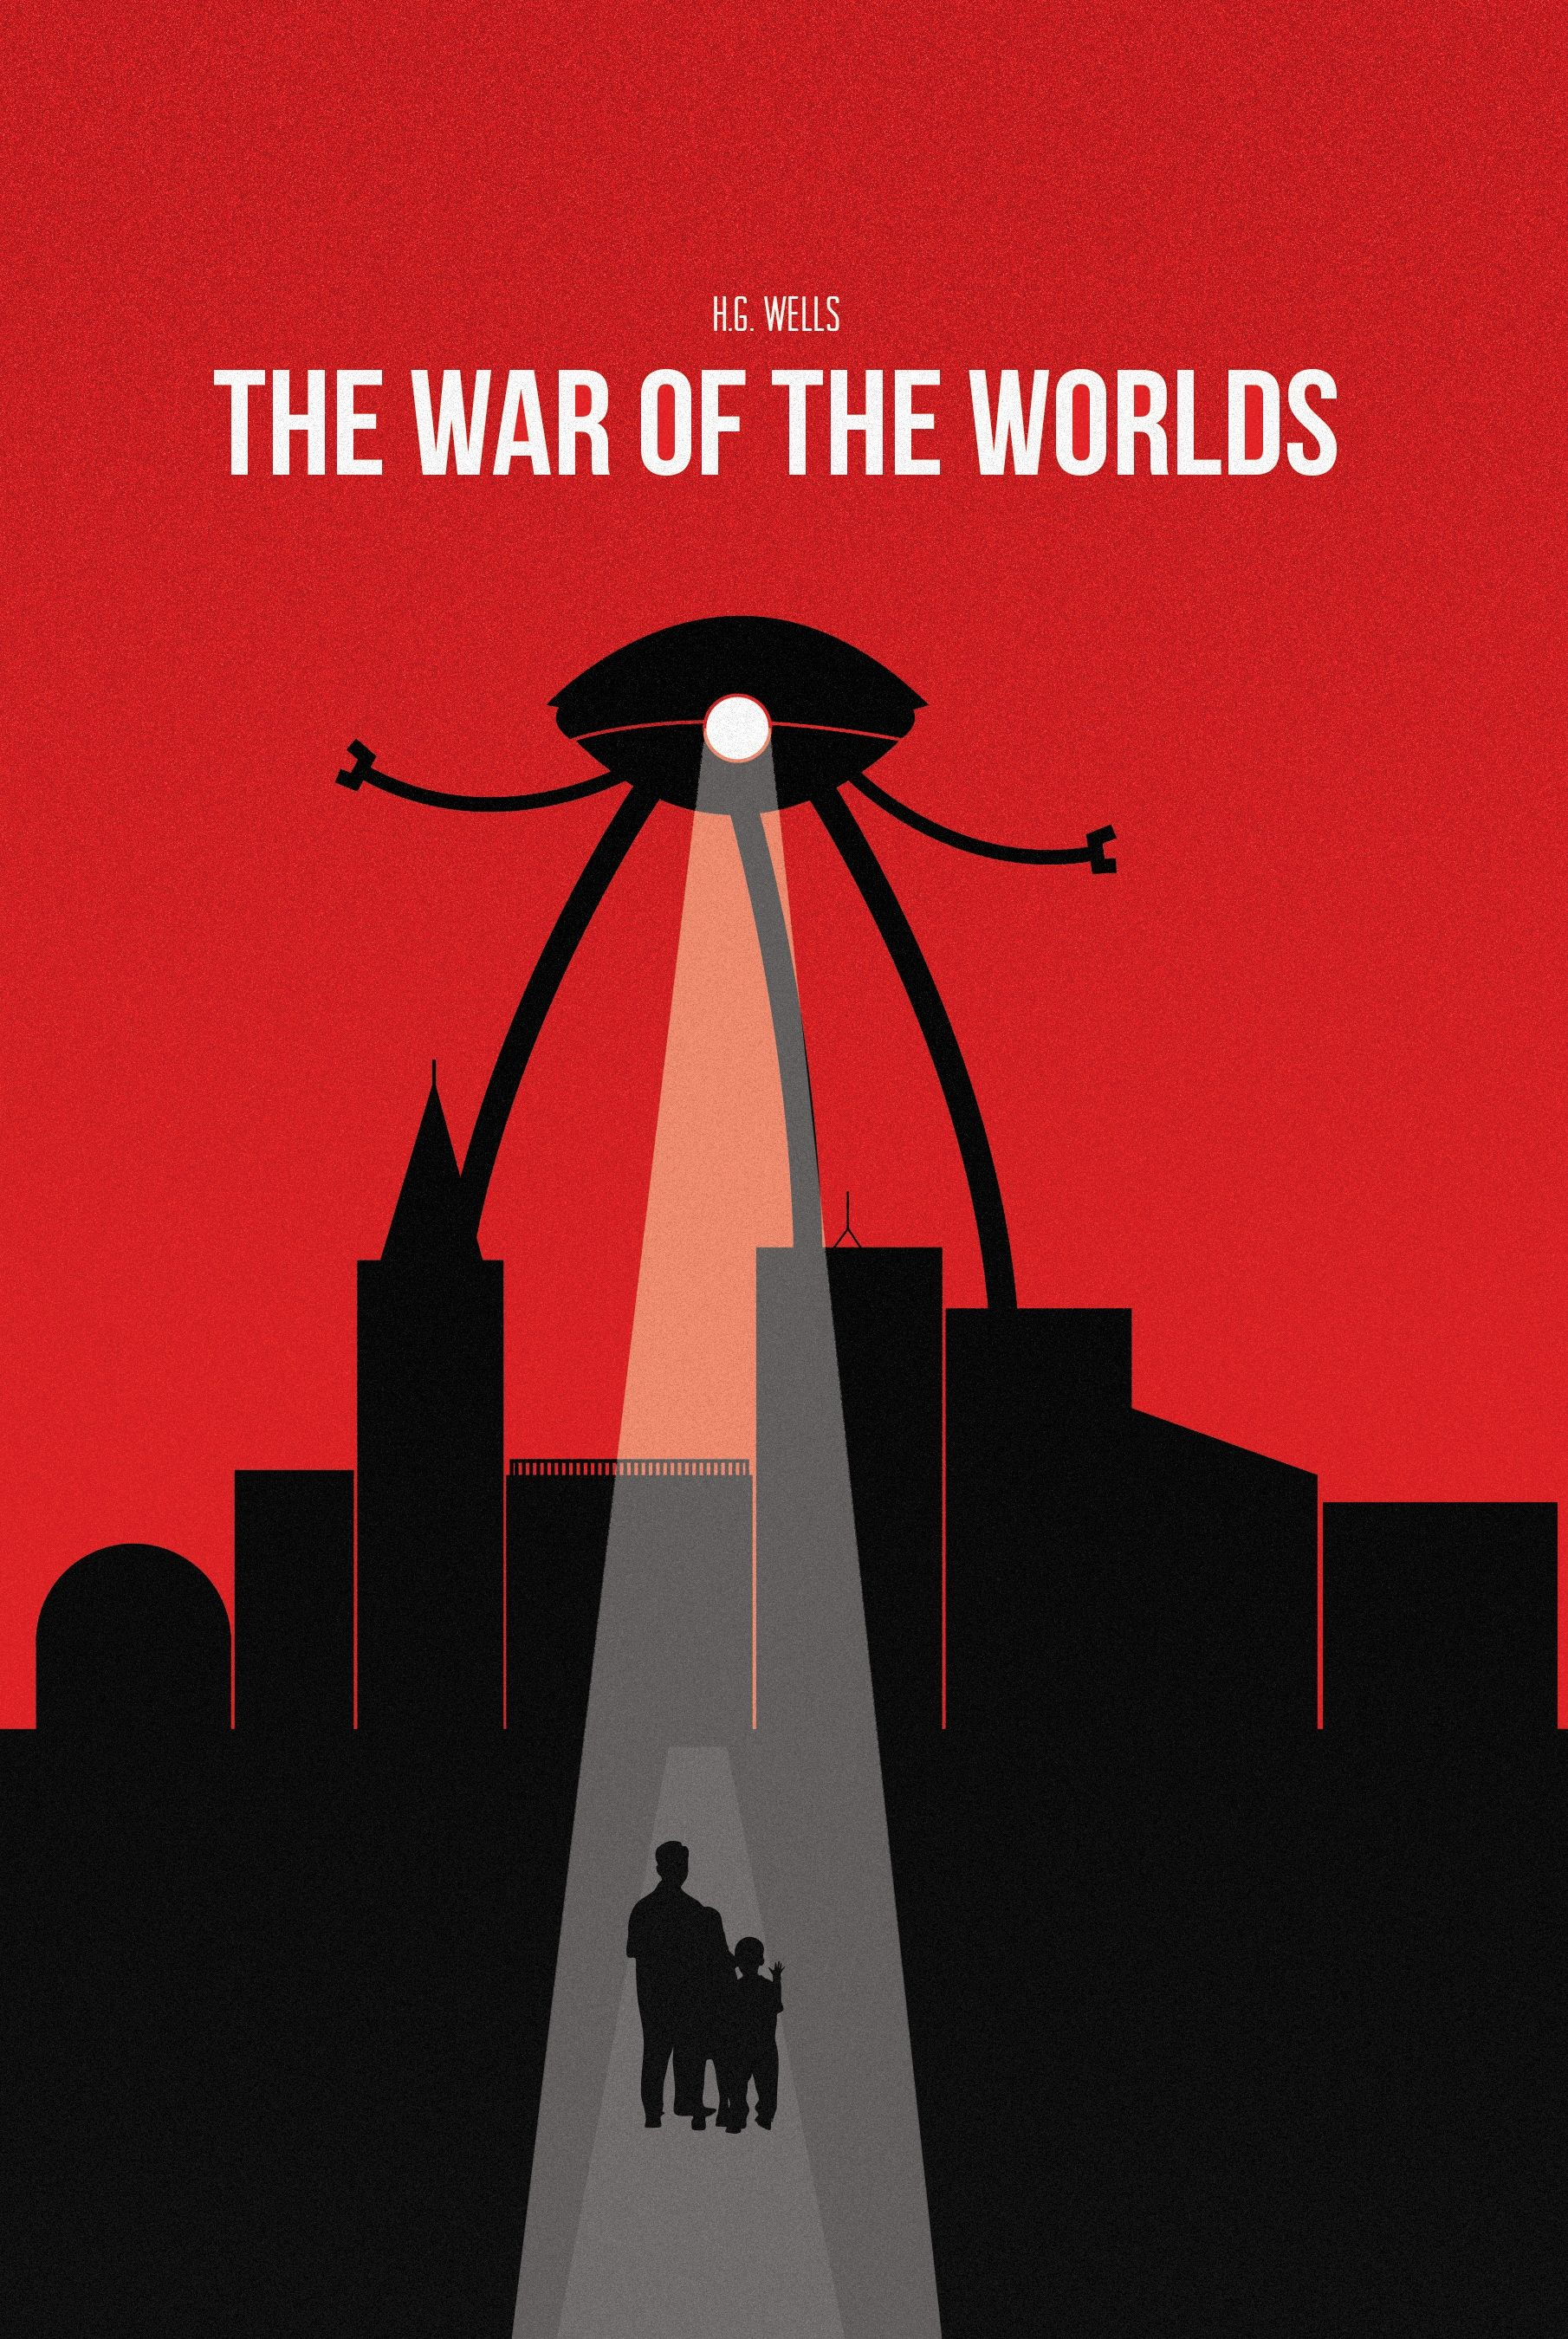 the war of the worlds book cover h.g wells